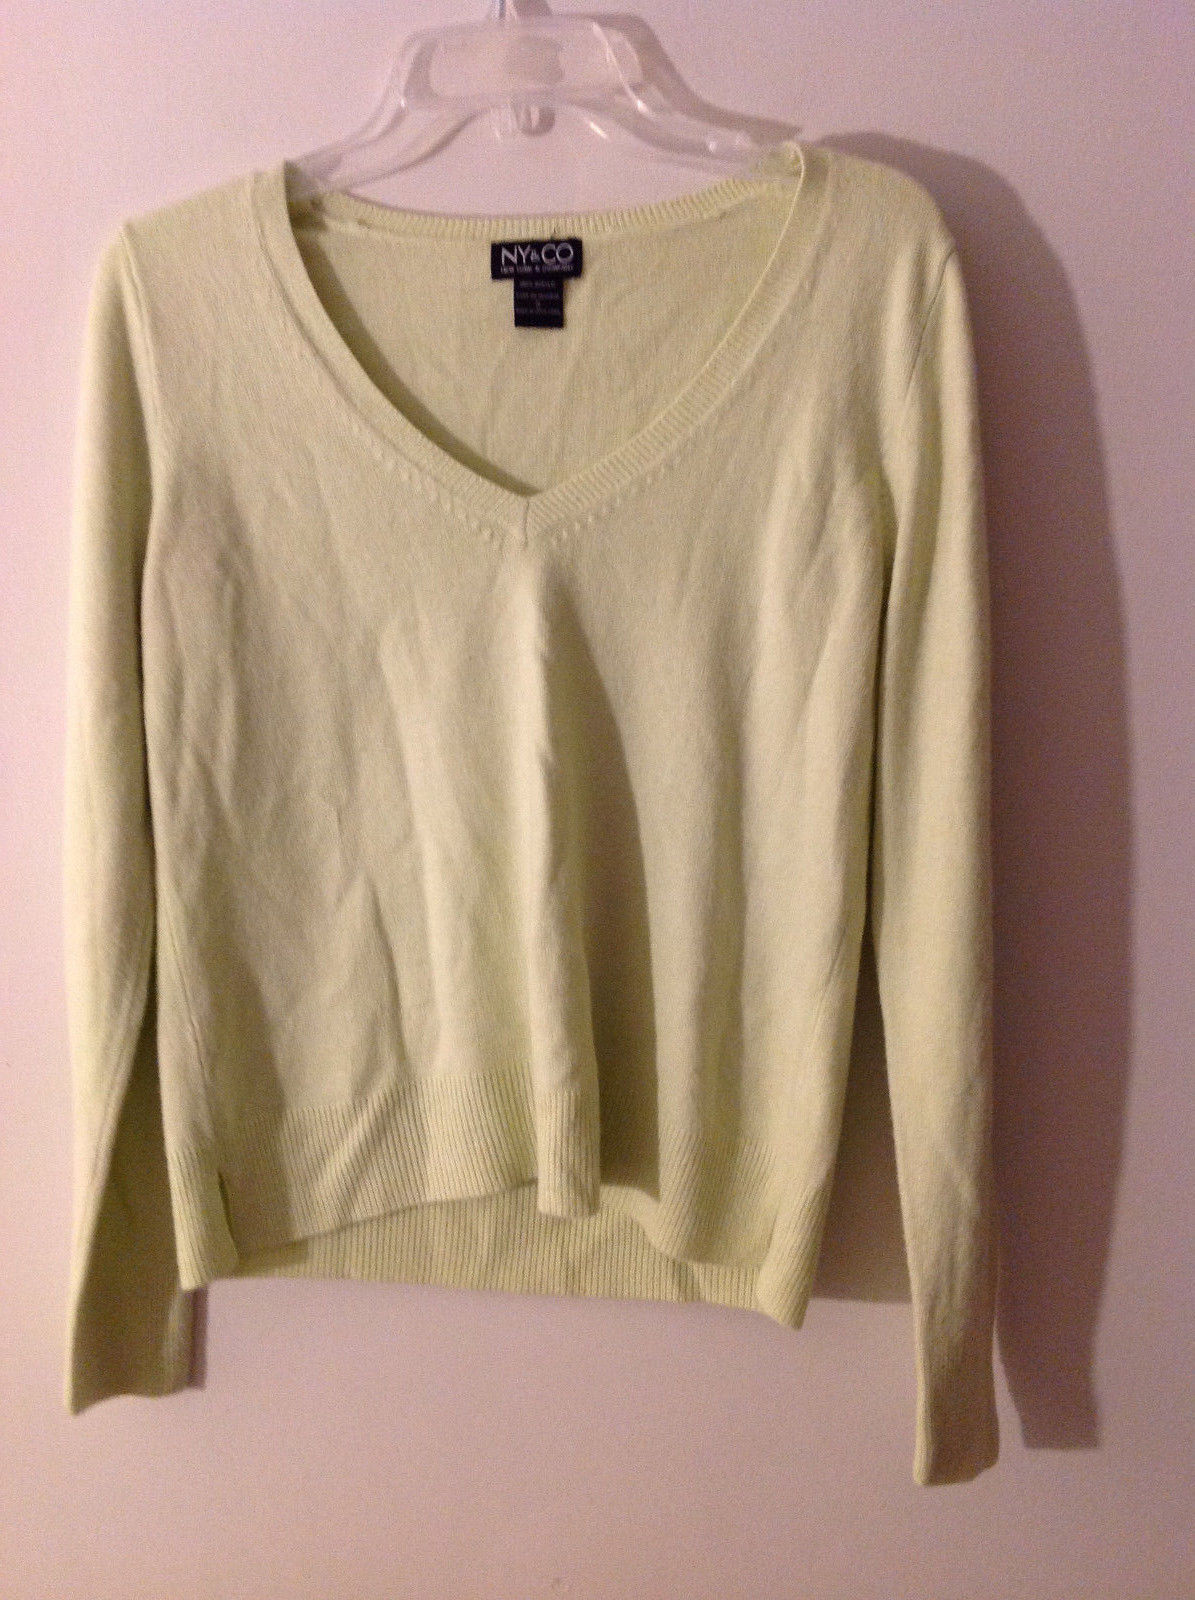 New York & Company Women's Size S Sweater w/ V Neck Lime Yellow Green Thin Knit